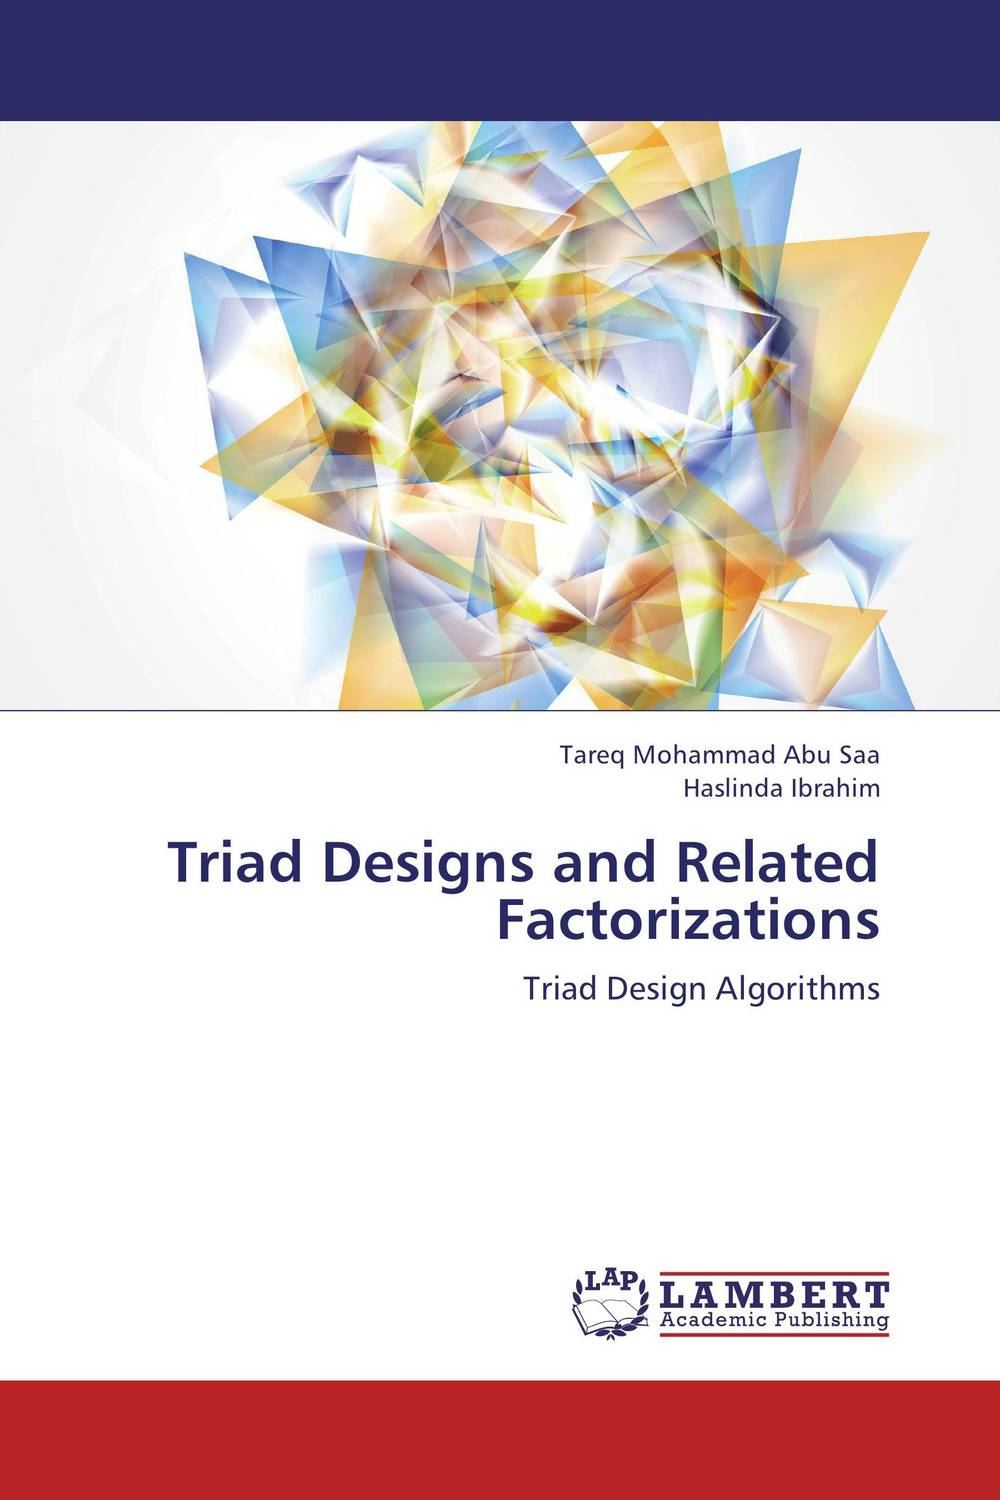 Triad Designs and Related Factorizations triad designs and related factorizations